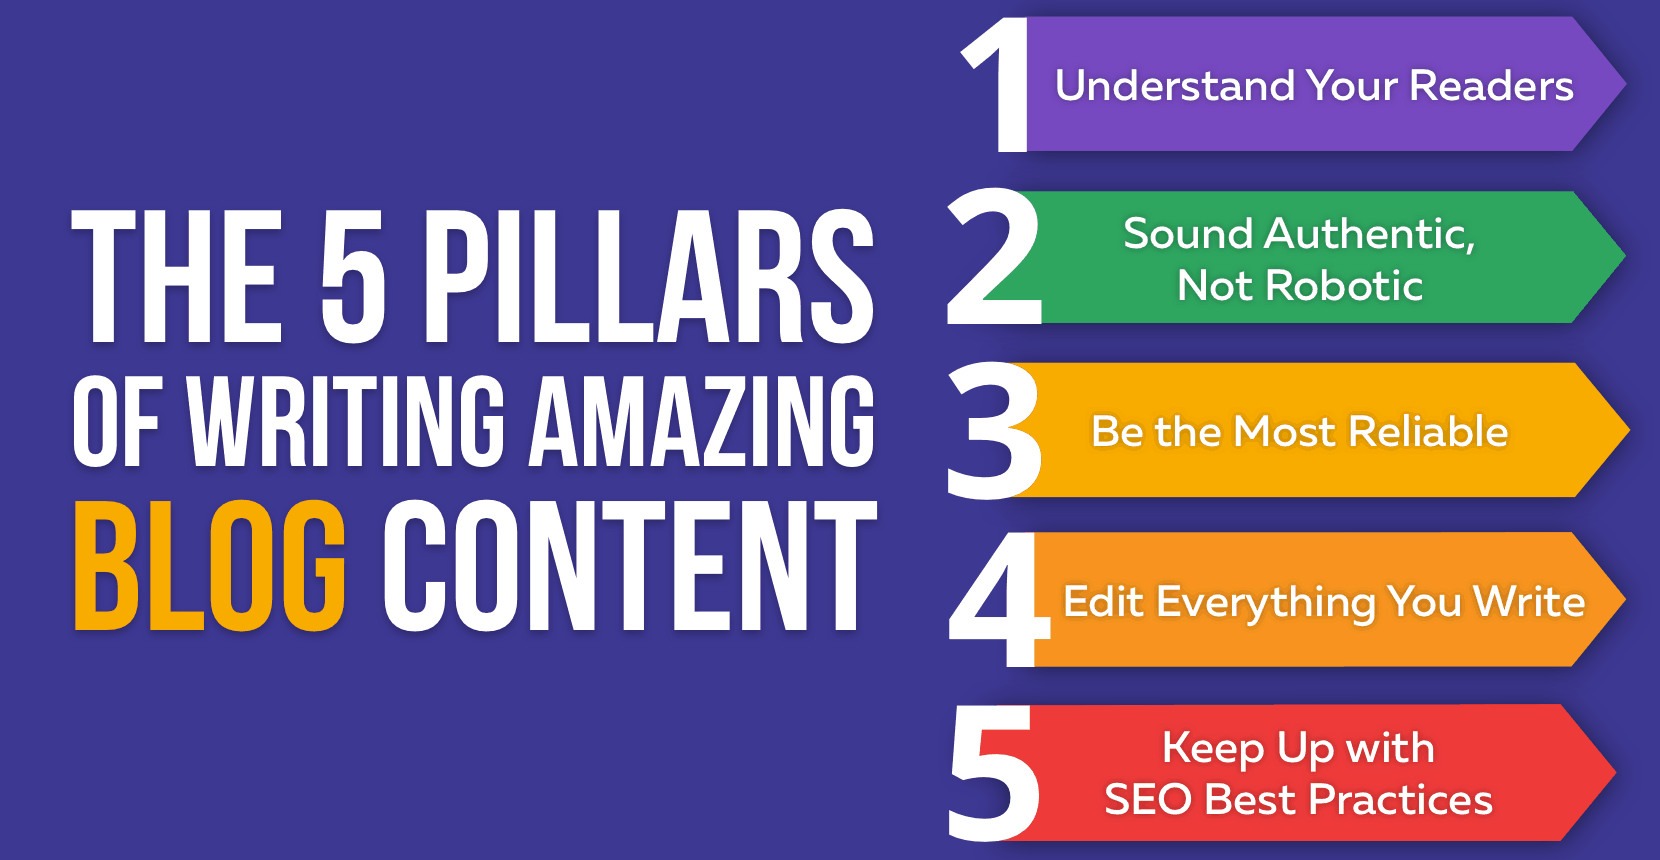 The 5 Pillars of Writing Amazing Blog Content (2)